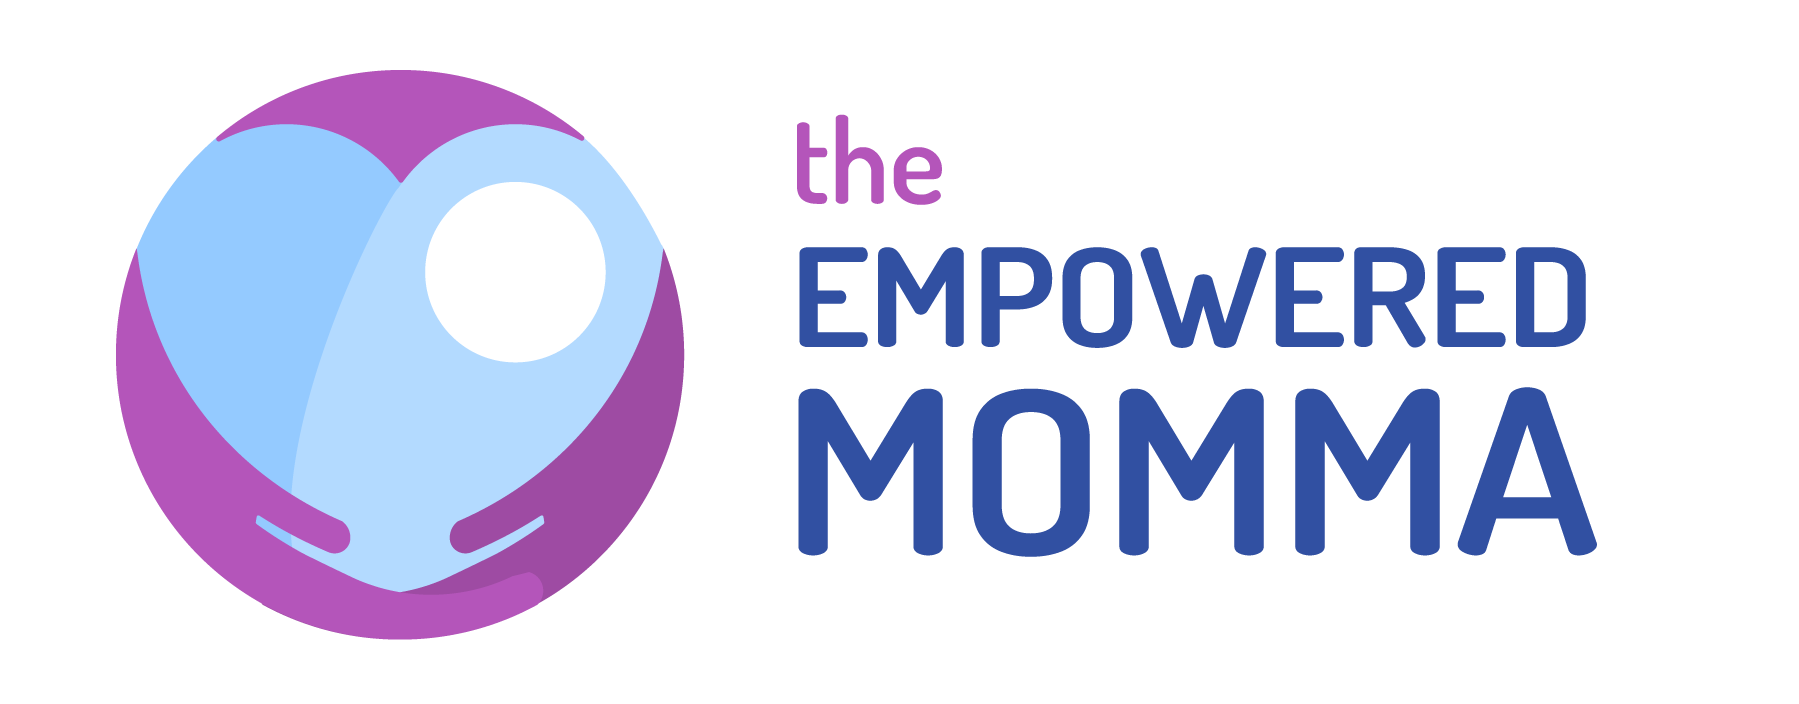 The Empowered Momma